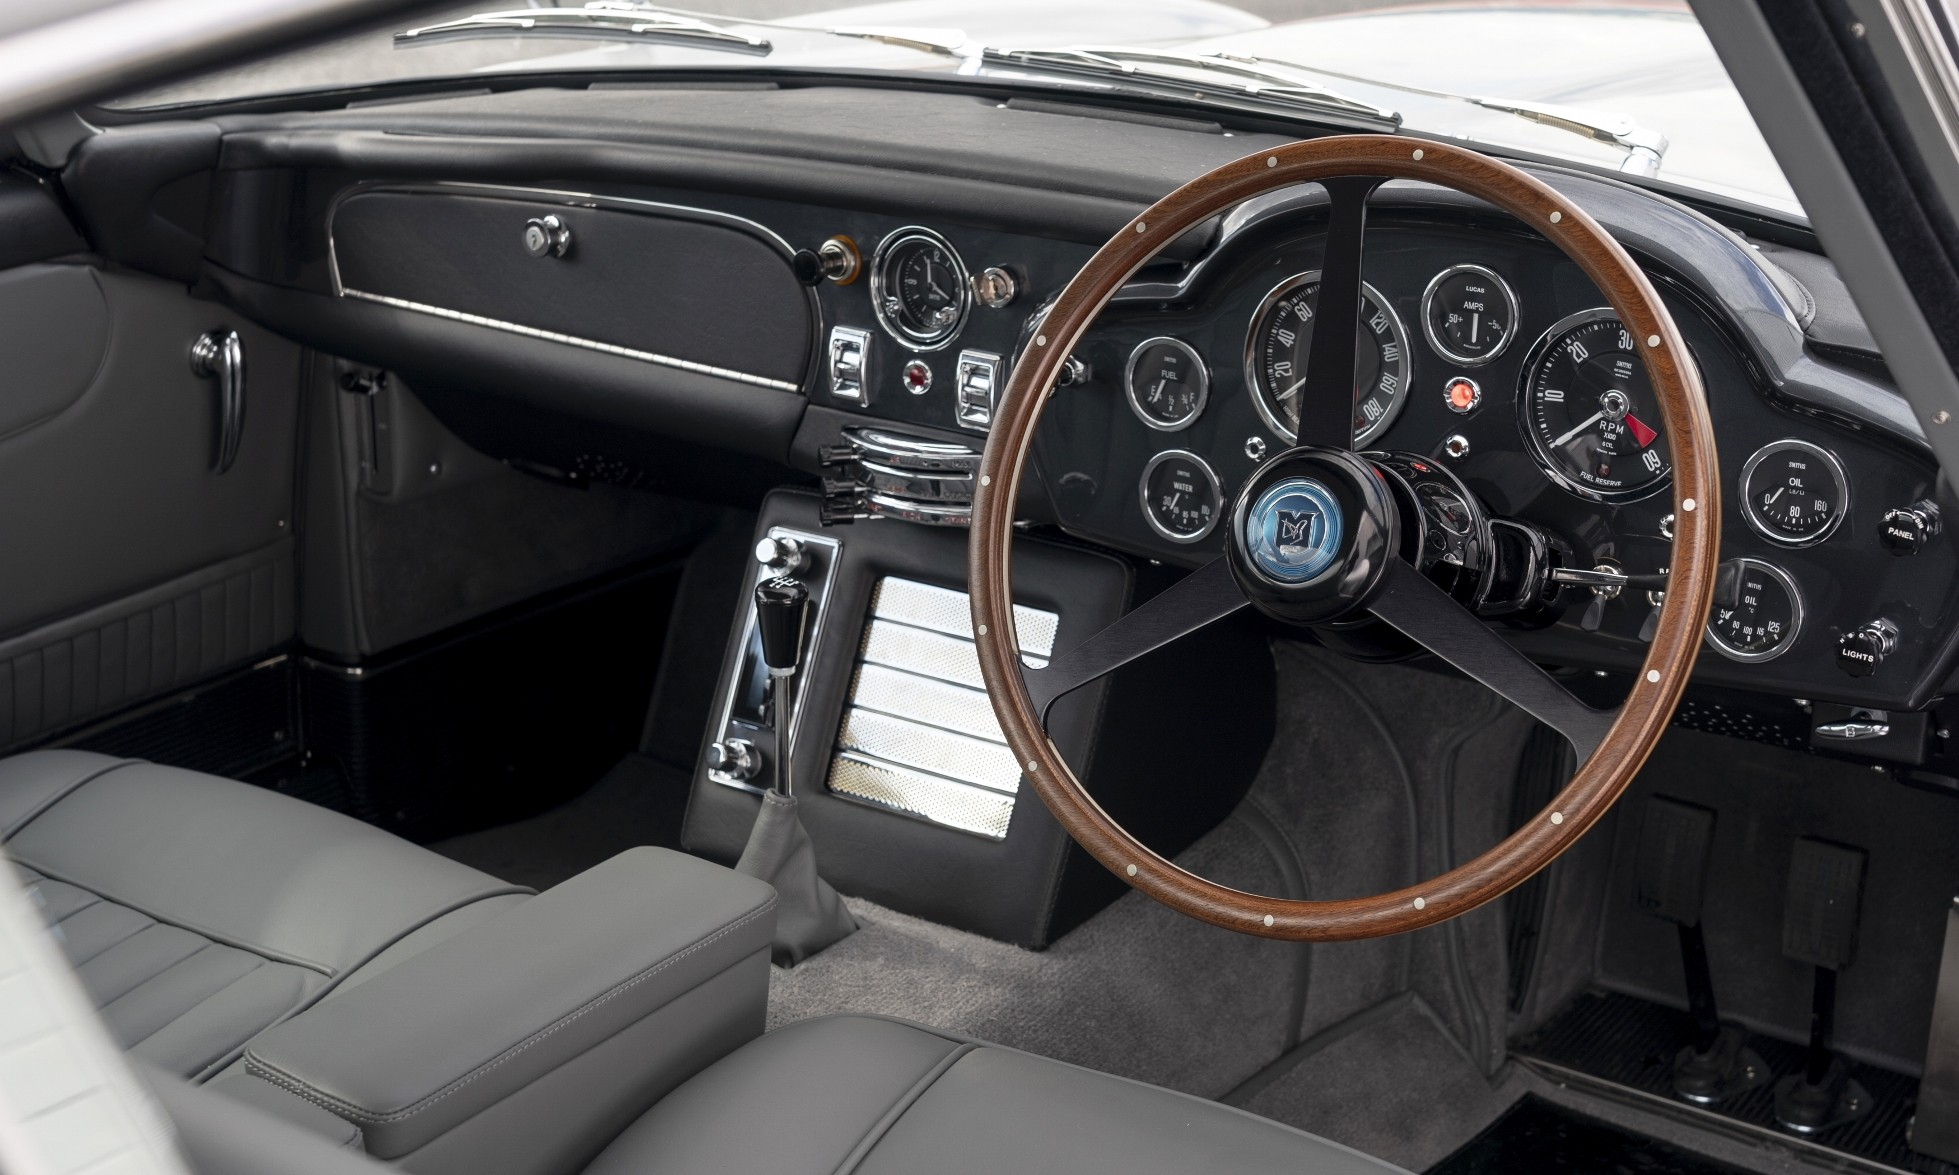 James Bond Aston Martin DB5 interior